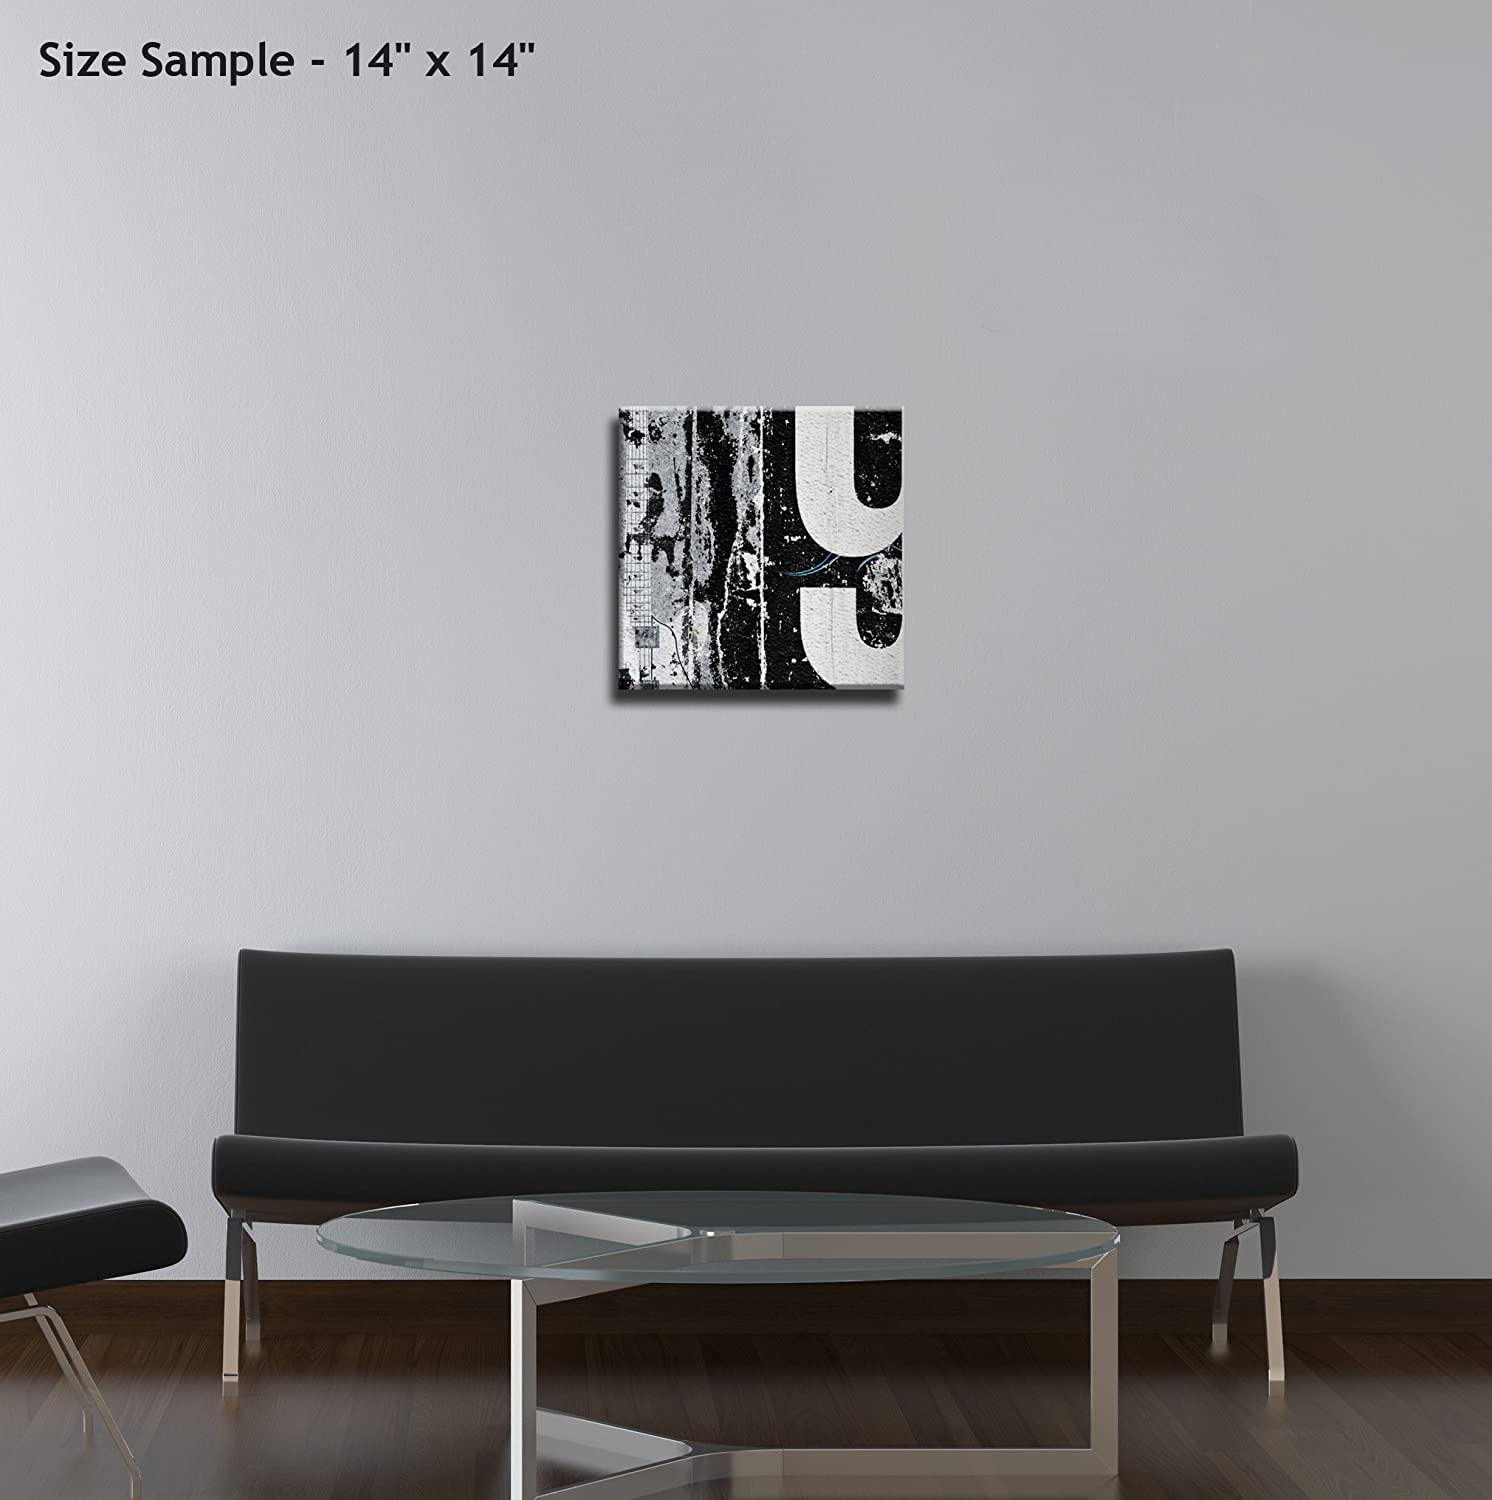 JP London Ready to Hang Made in North America Gallery Wrap Heavyweight Canvas Wall Art Frozen Winter Tree Snow Forest 14in SQSCNV2042